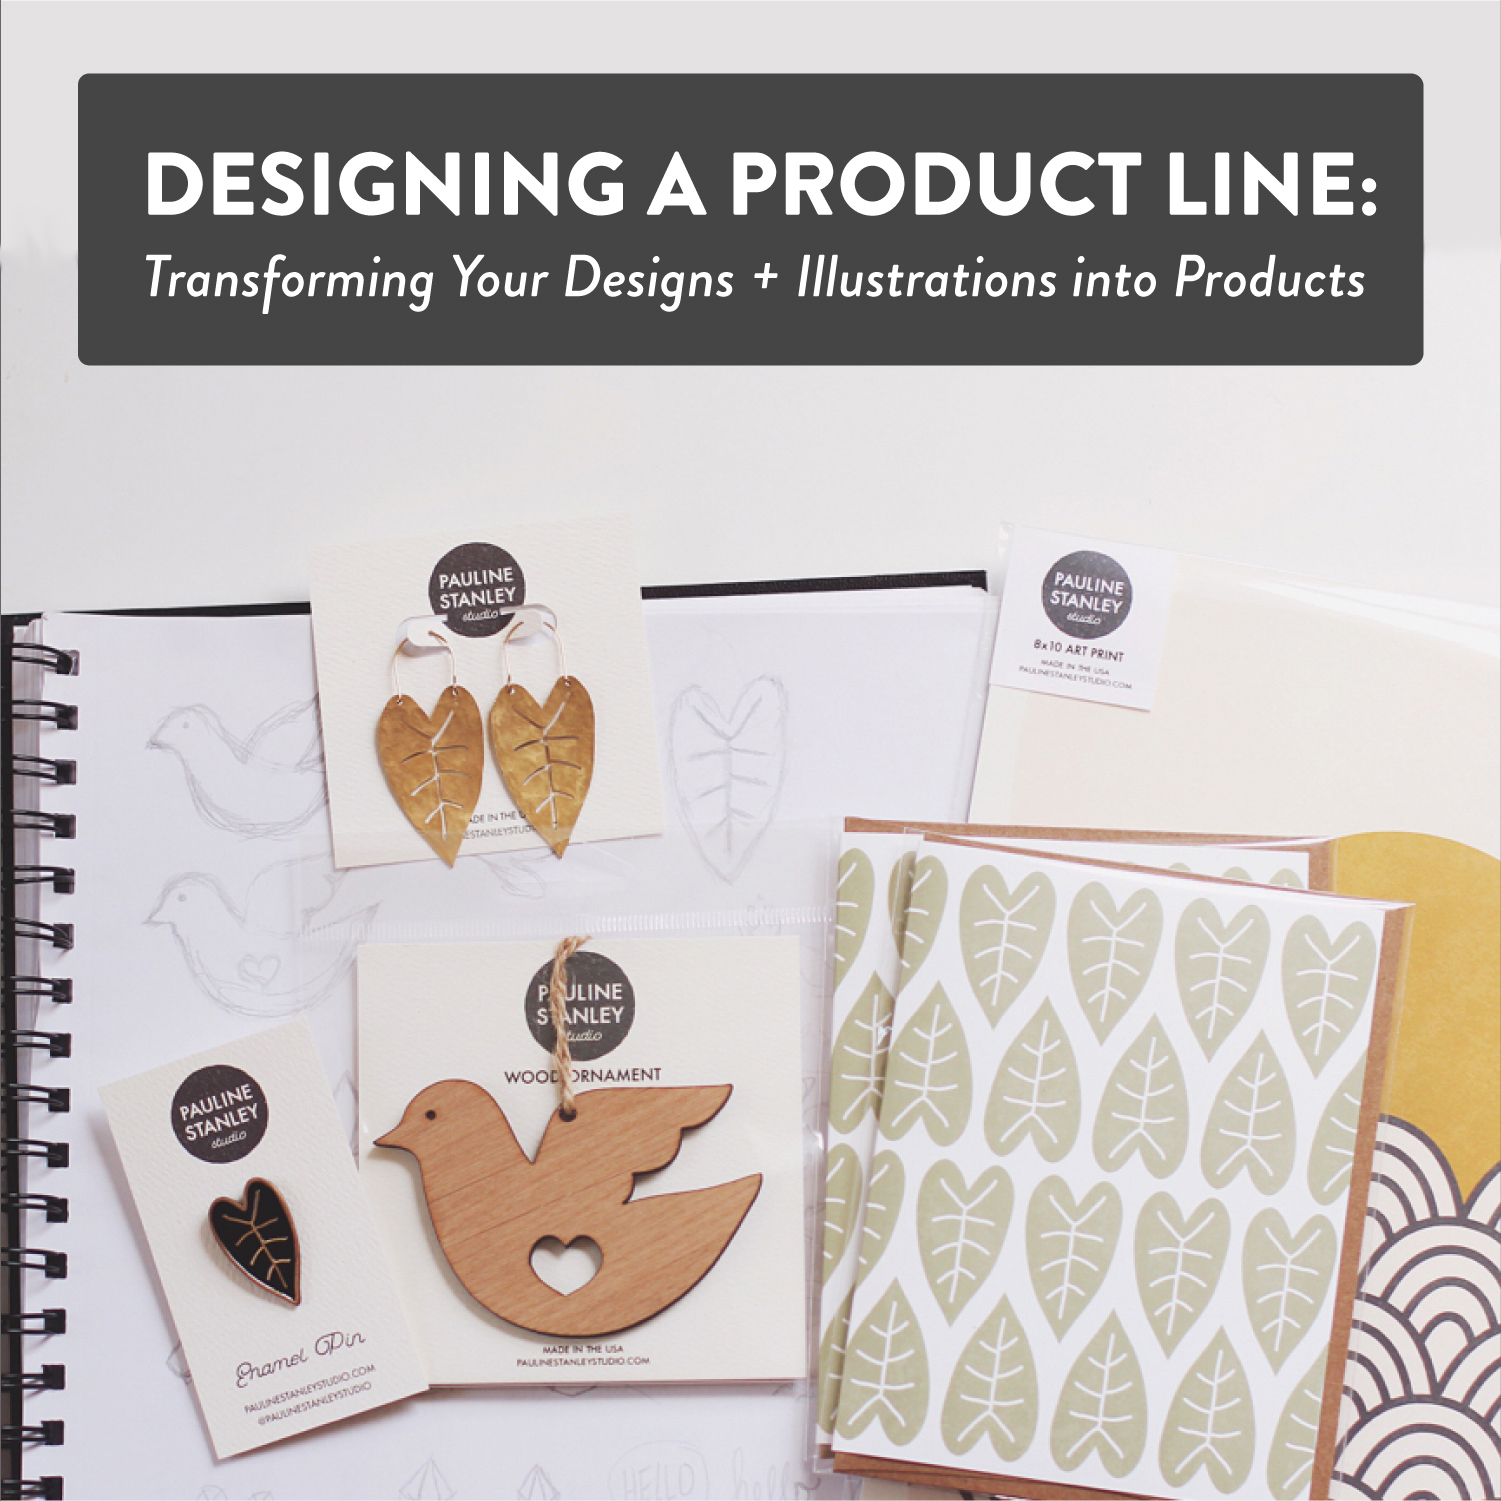 Skillshare class - Designing a Product Line: Transforming Your Design + Illustrations into Products.